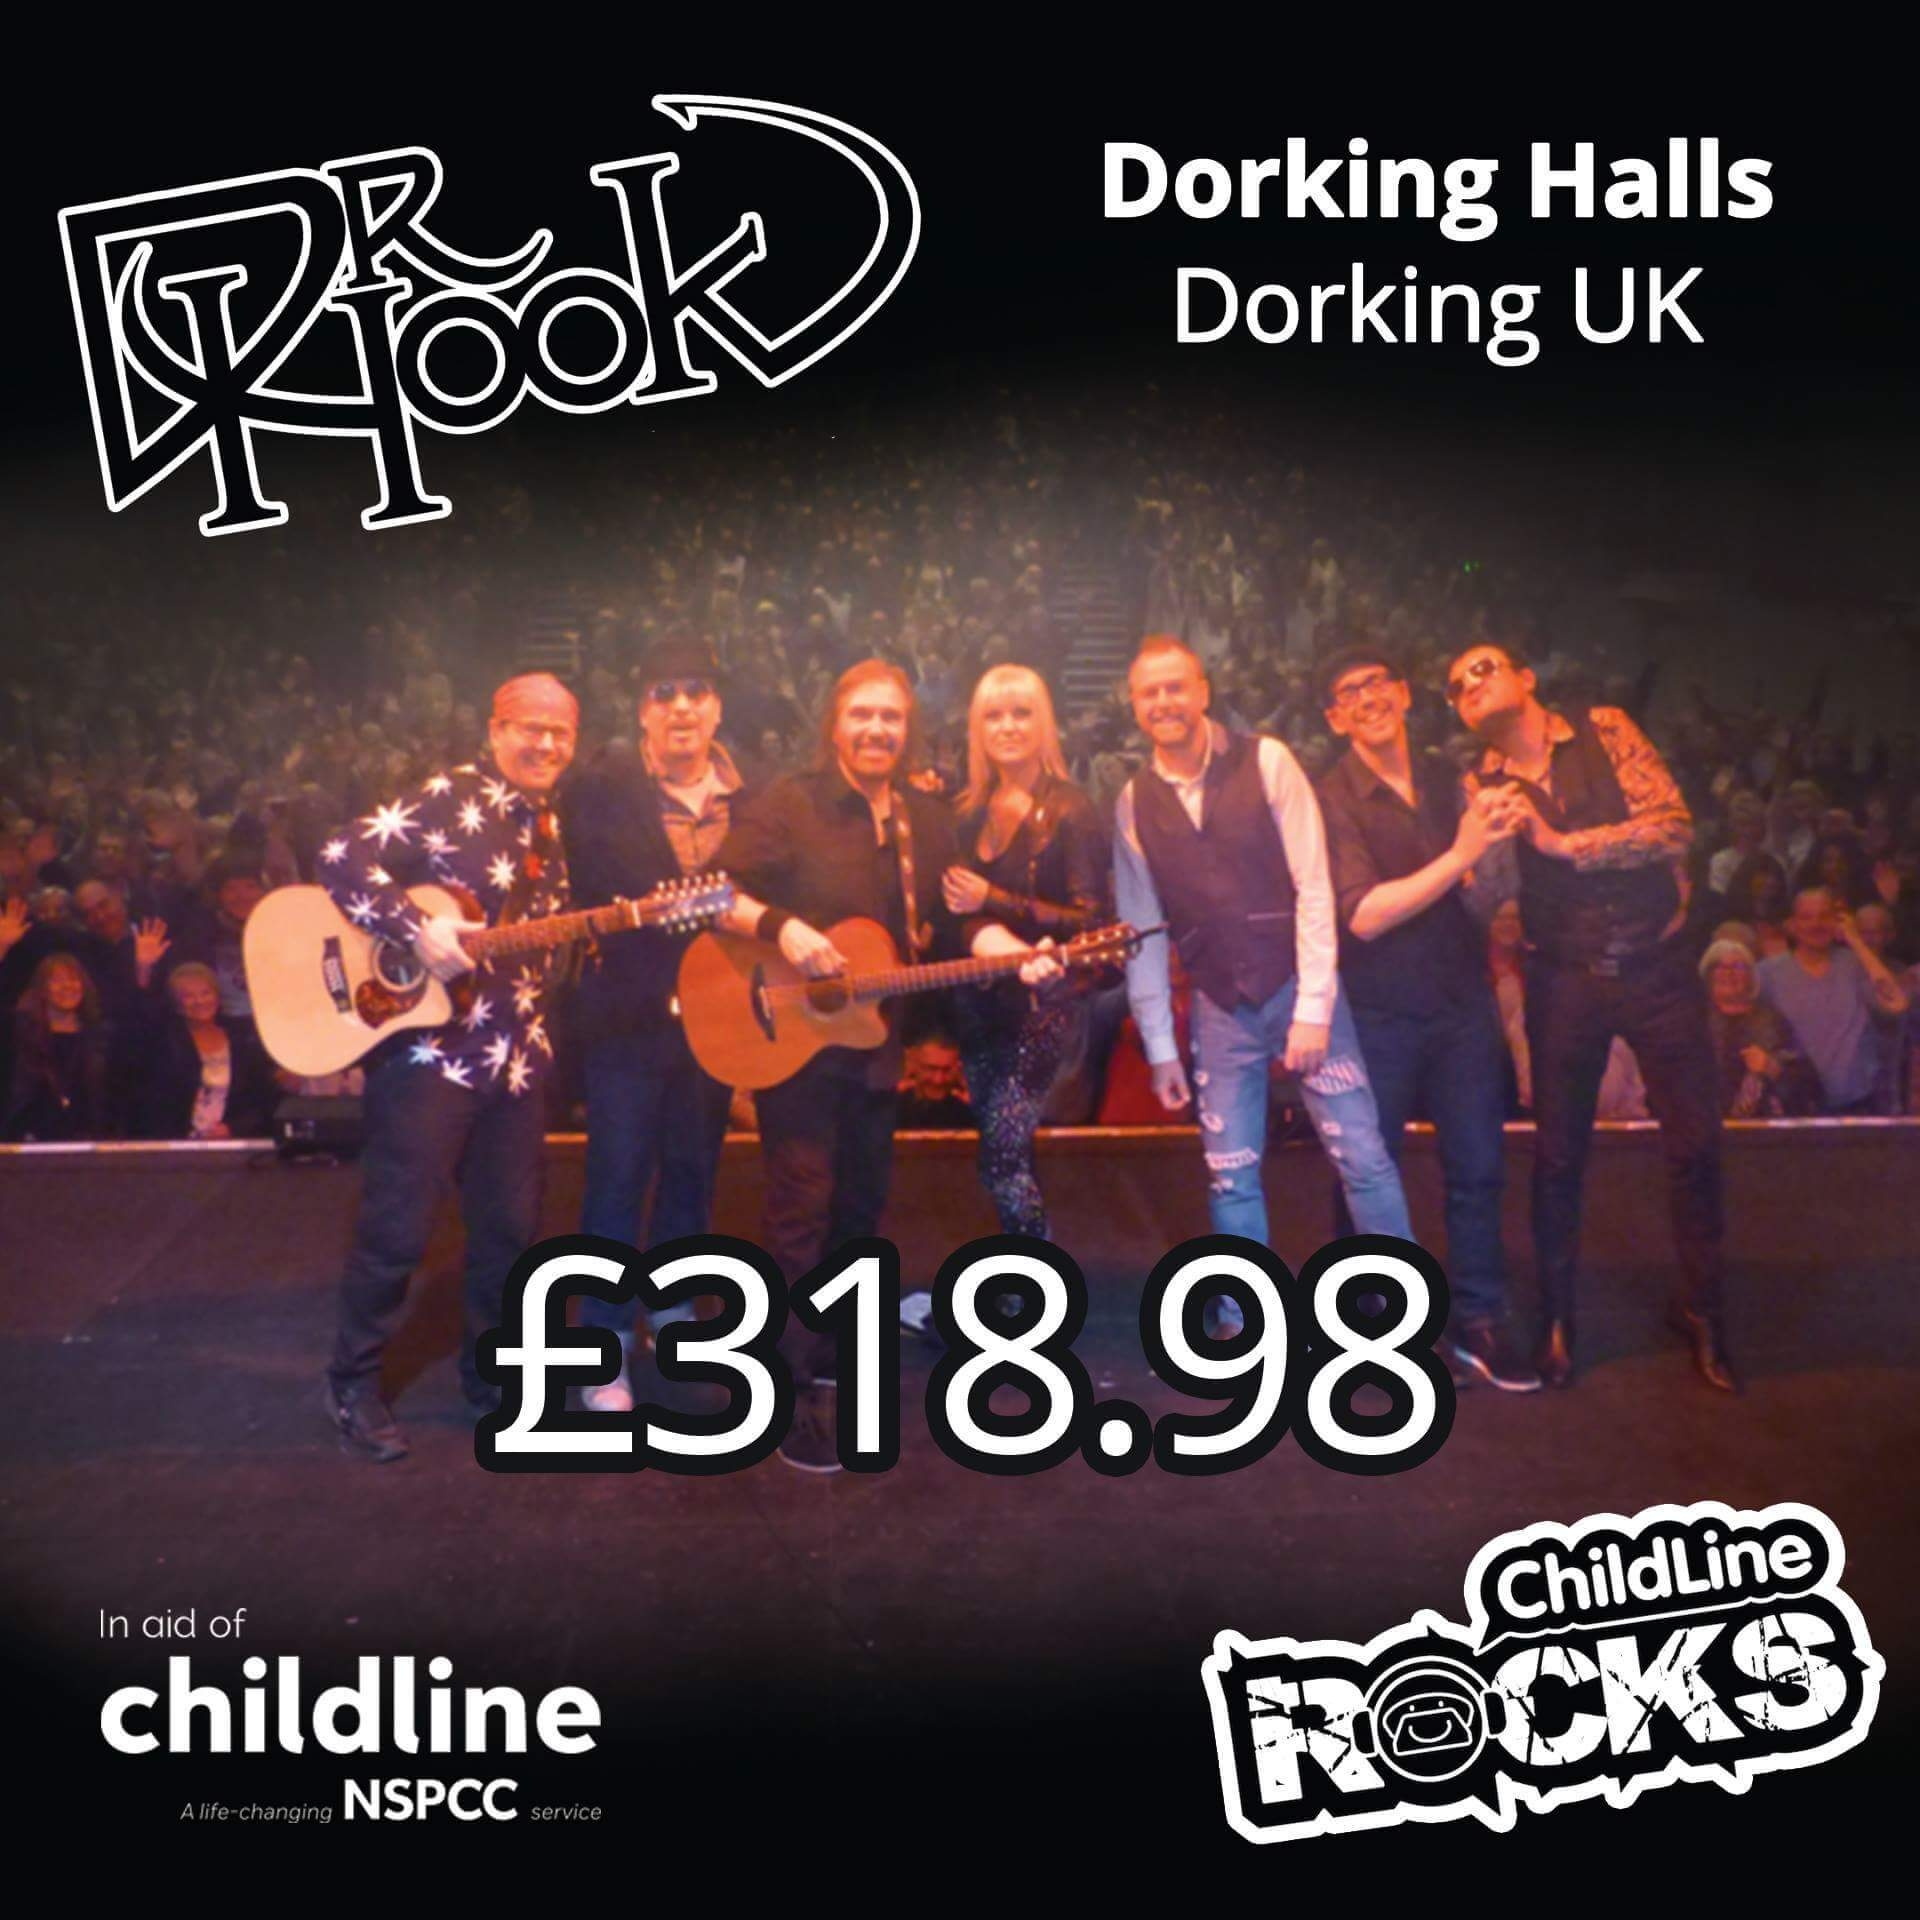 Dr Hook - Fundraising - NSPCC - Childline - Dorking-UK - 2017-2